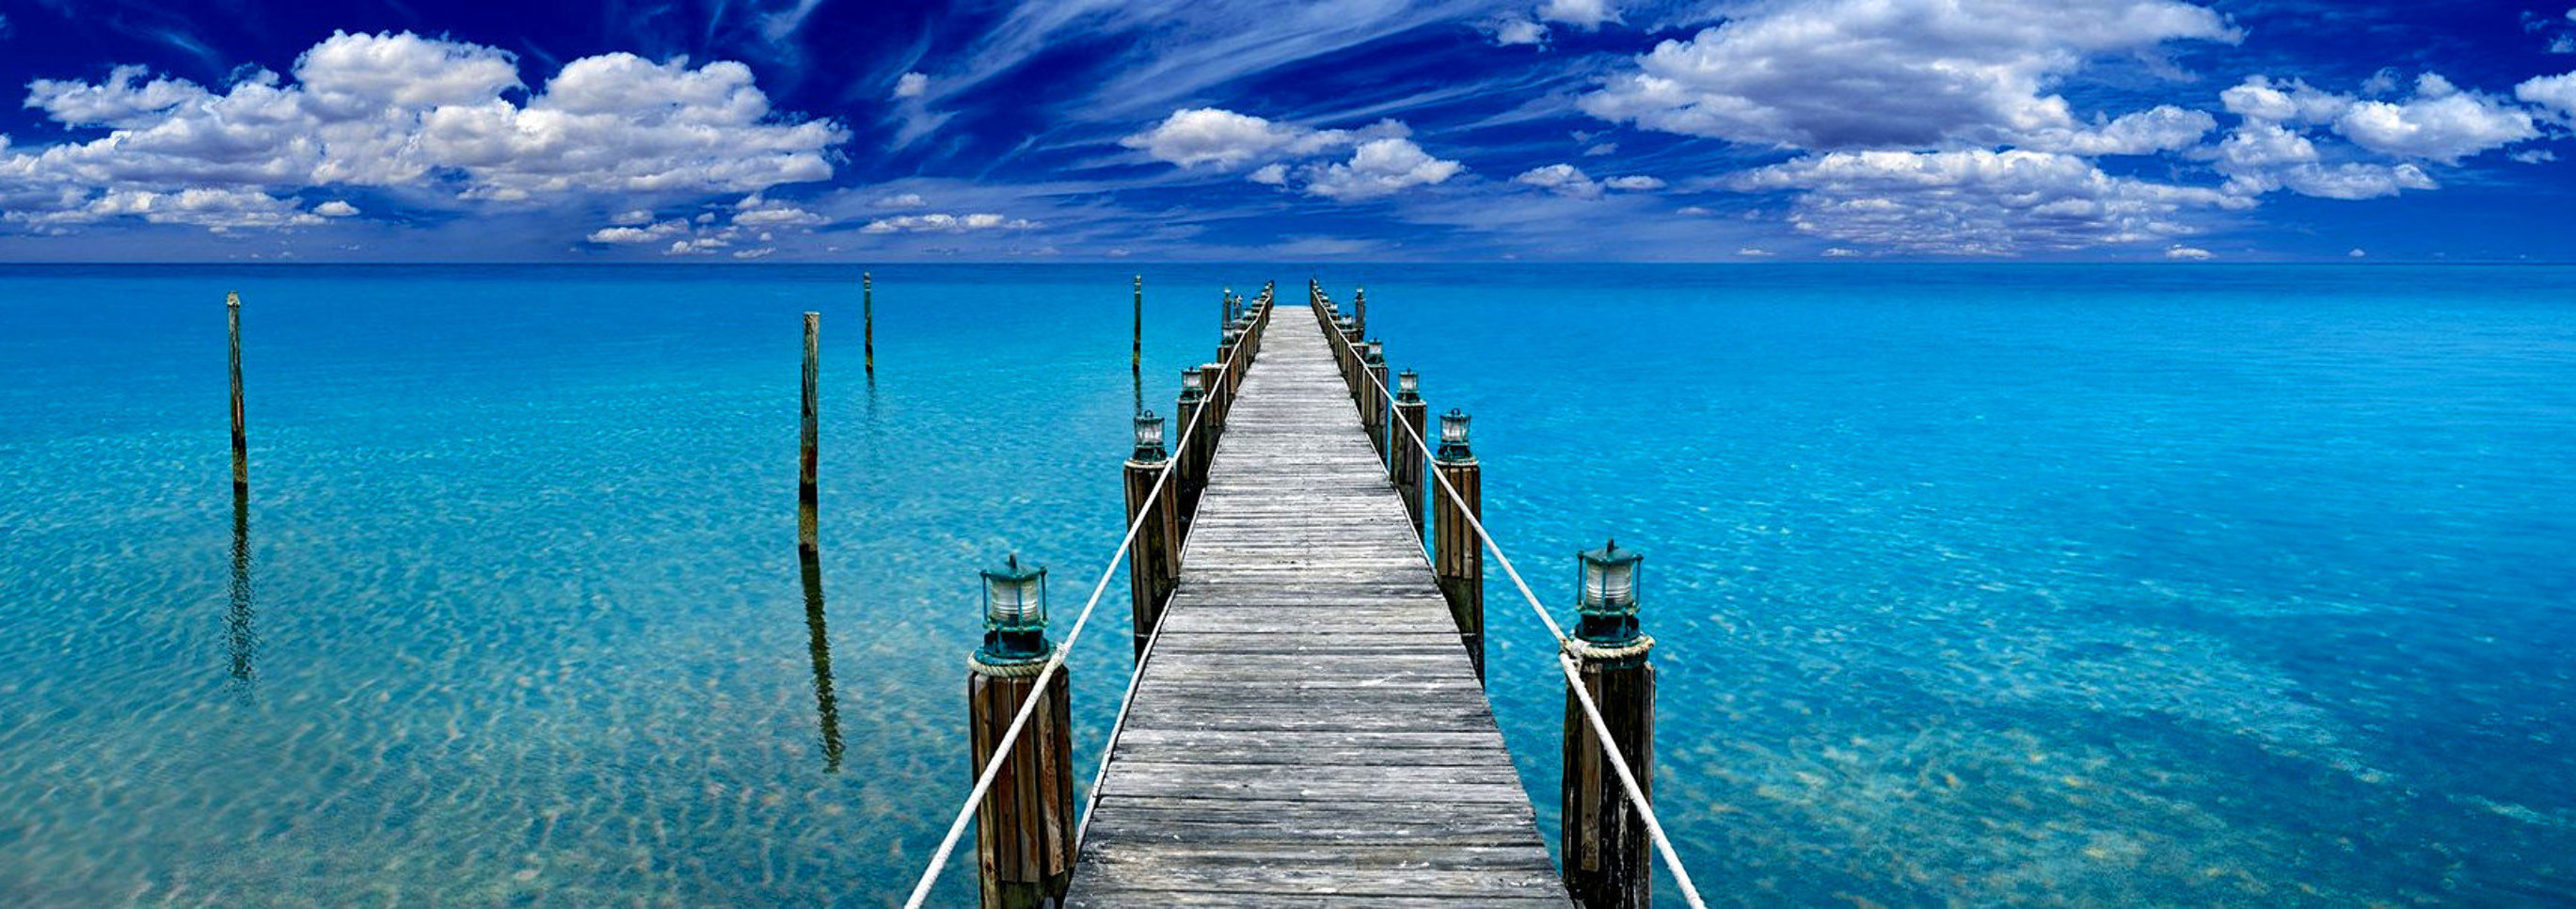 Tranquil Blue 1.5M Huge Panorama by Peter Lik